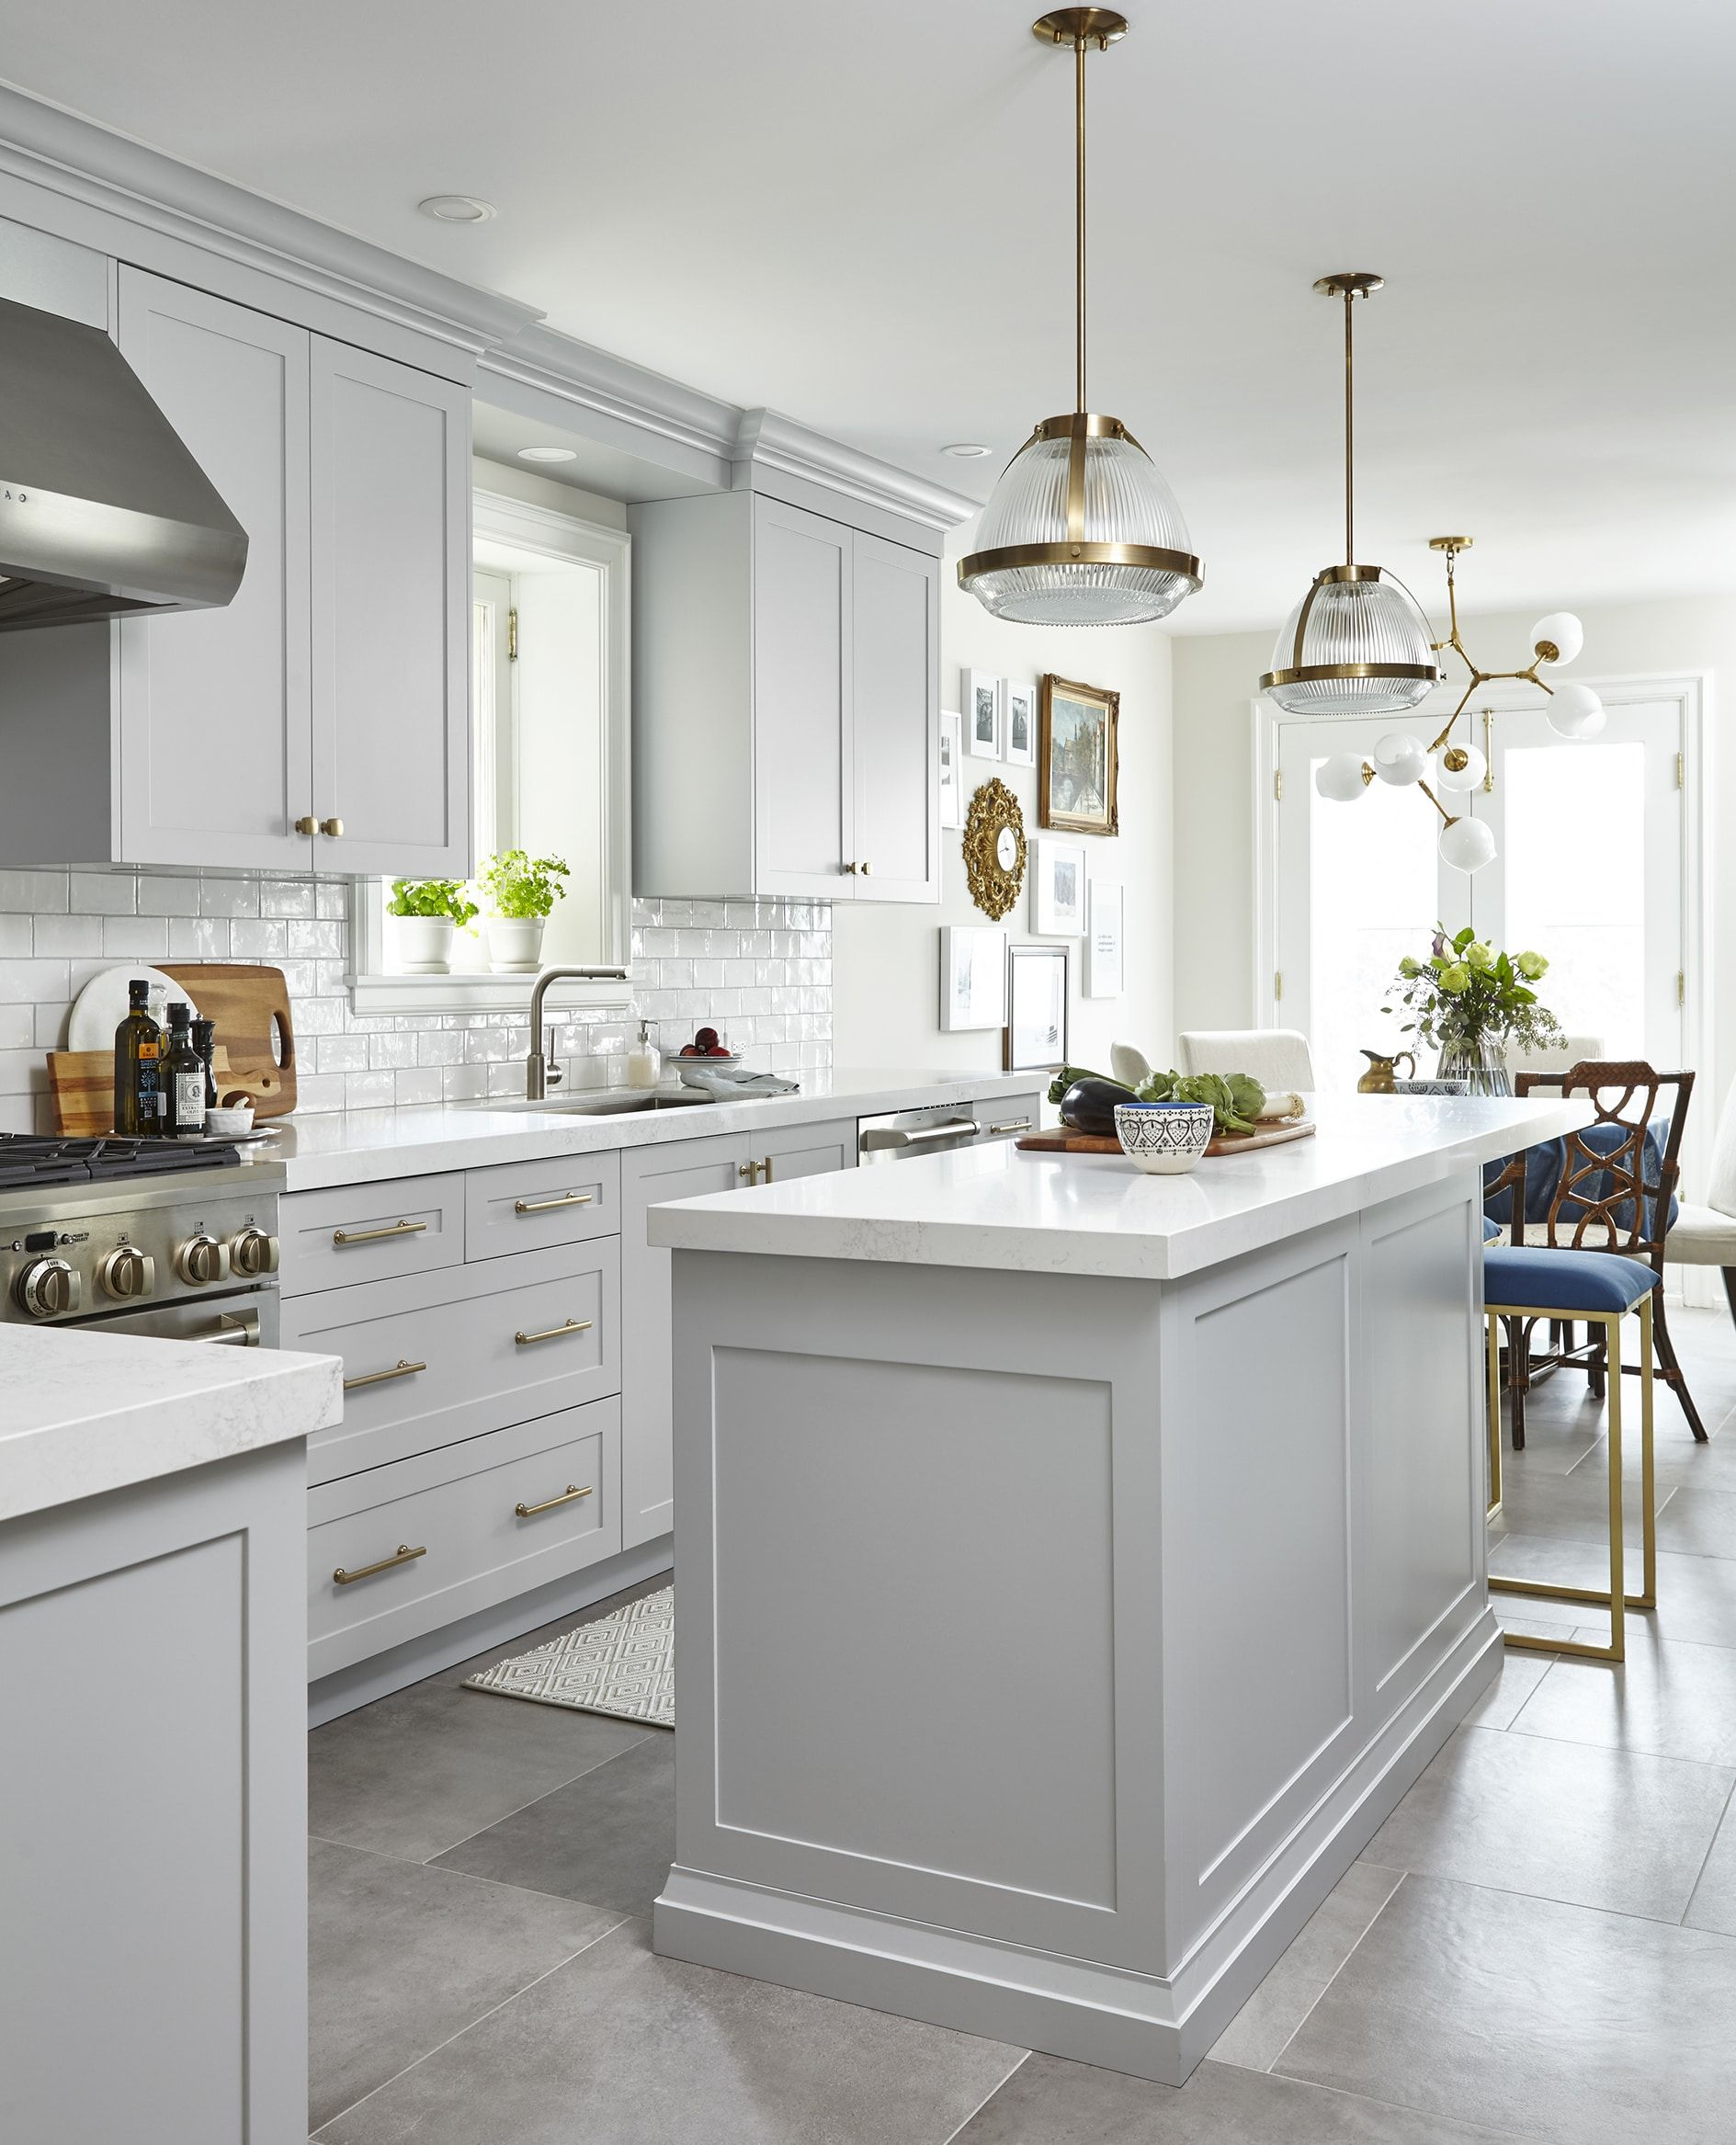 Light Grey Kitchen With Celestial Chandelier Over The Kitchen Table White Quartz Countertops O White Kitchen Design Kitchen Concepts Kitchen Cabinet Design